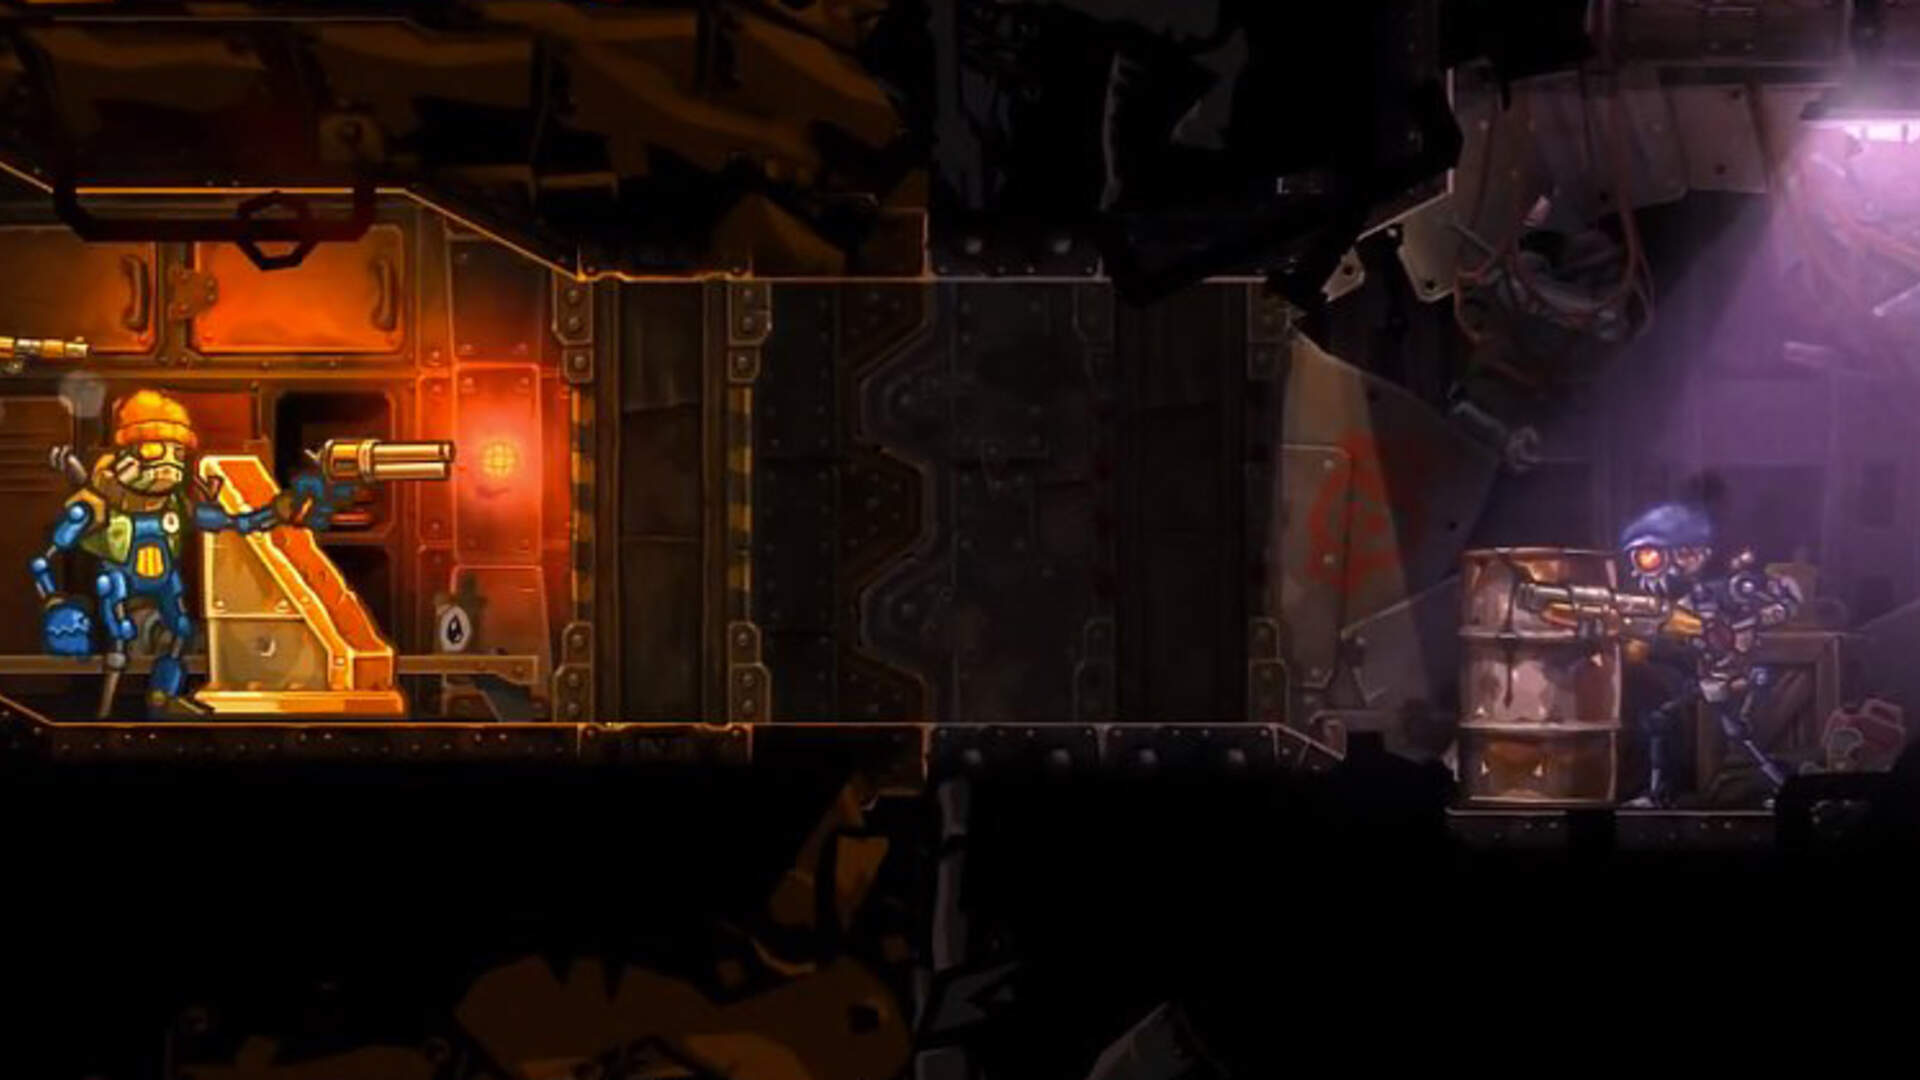 New SteamWorld Game Coming in 2017 For Studio's 20th Anniversary